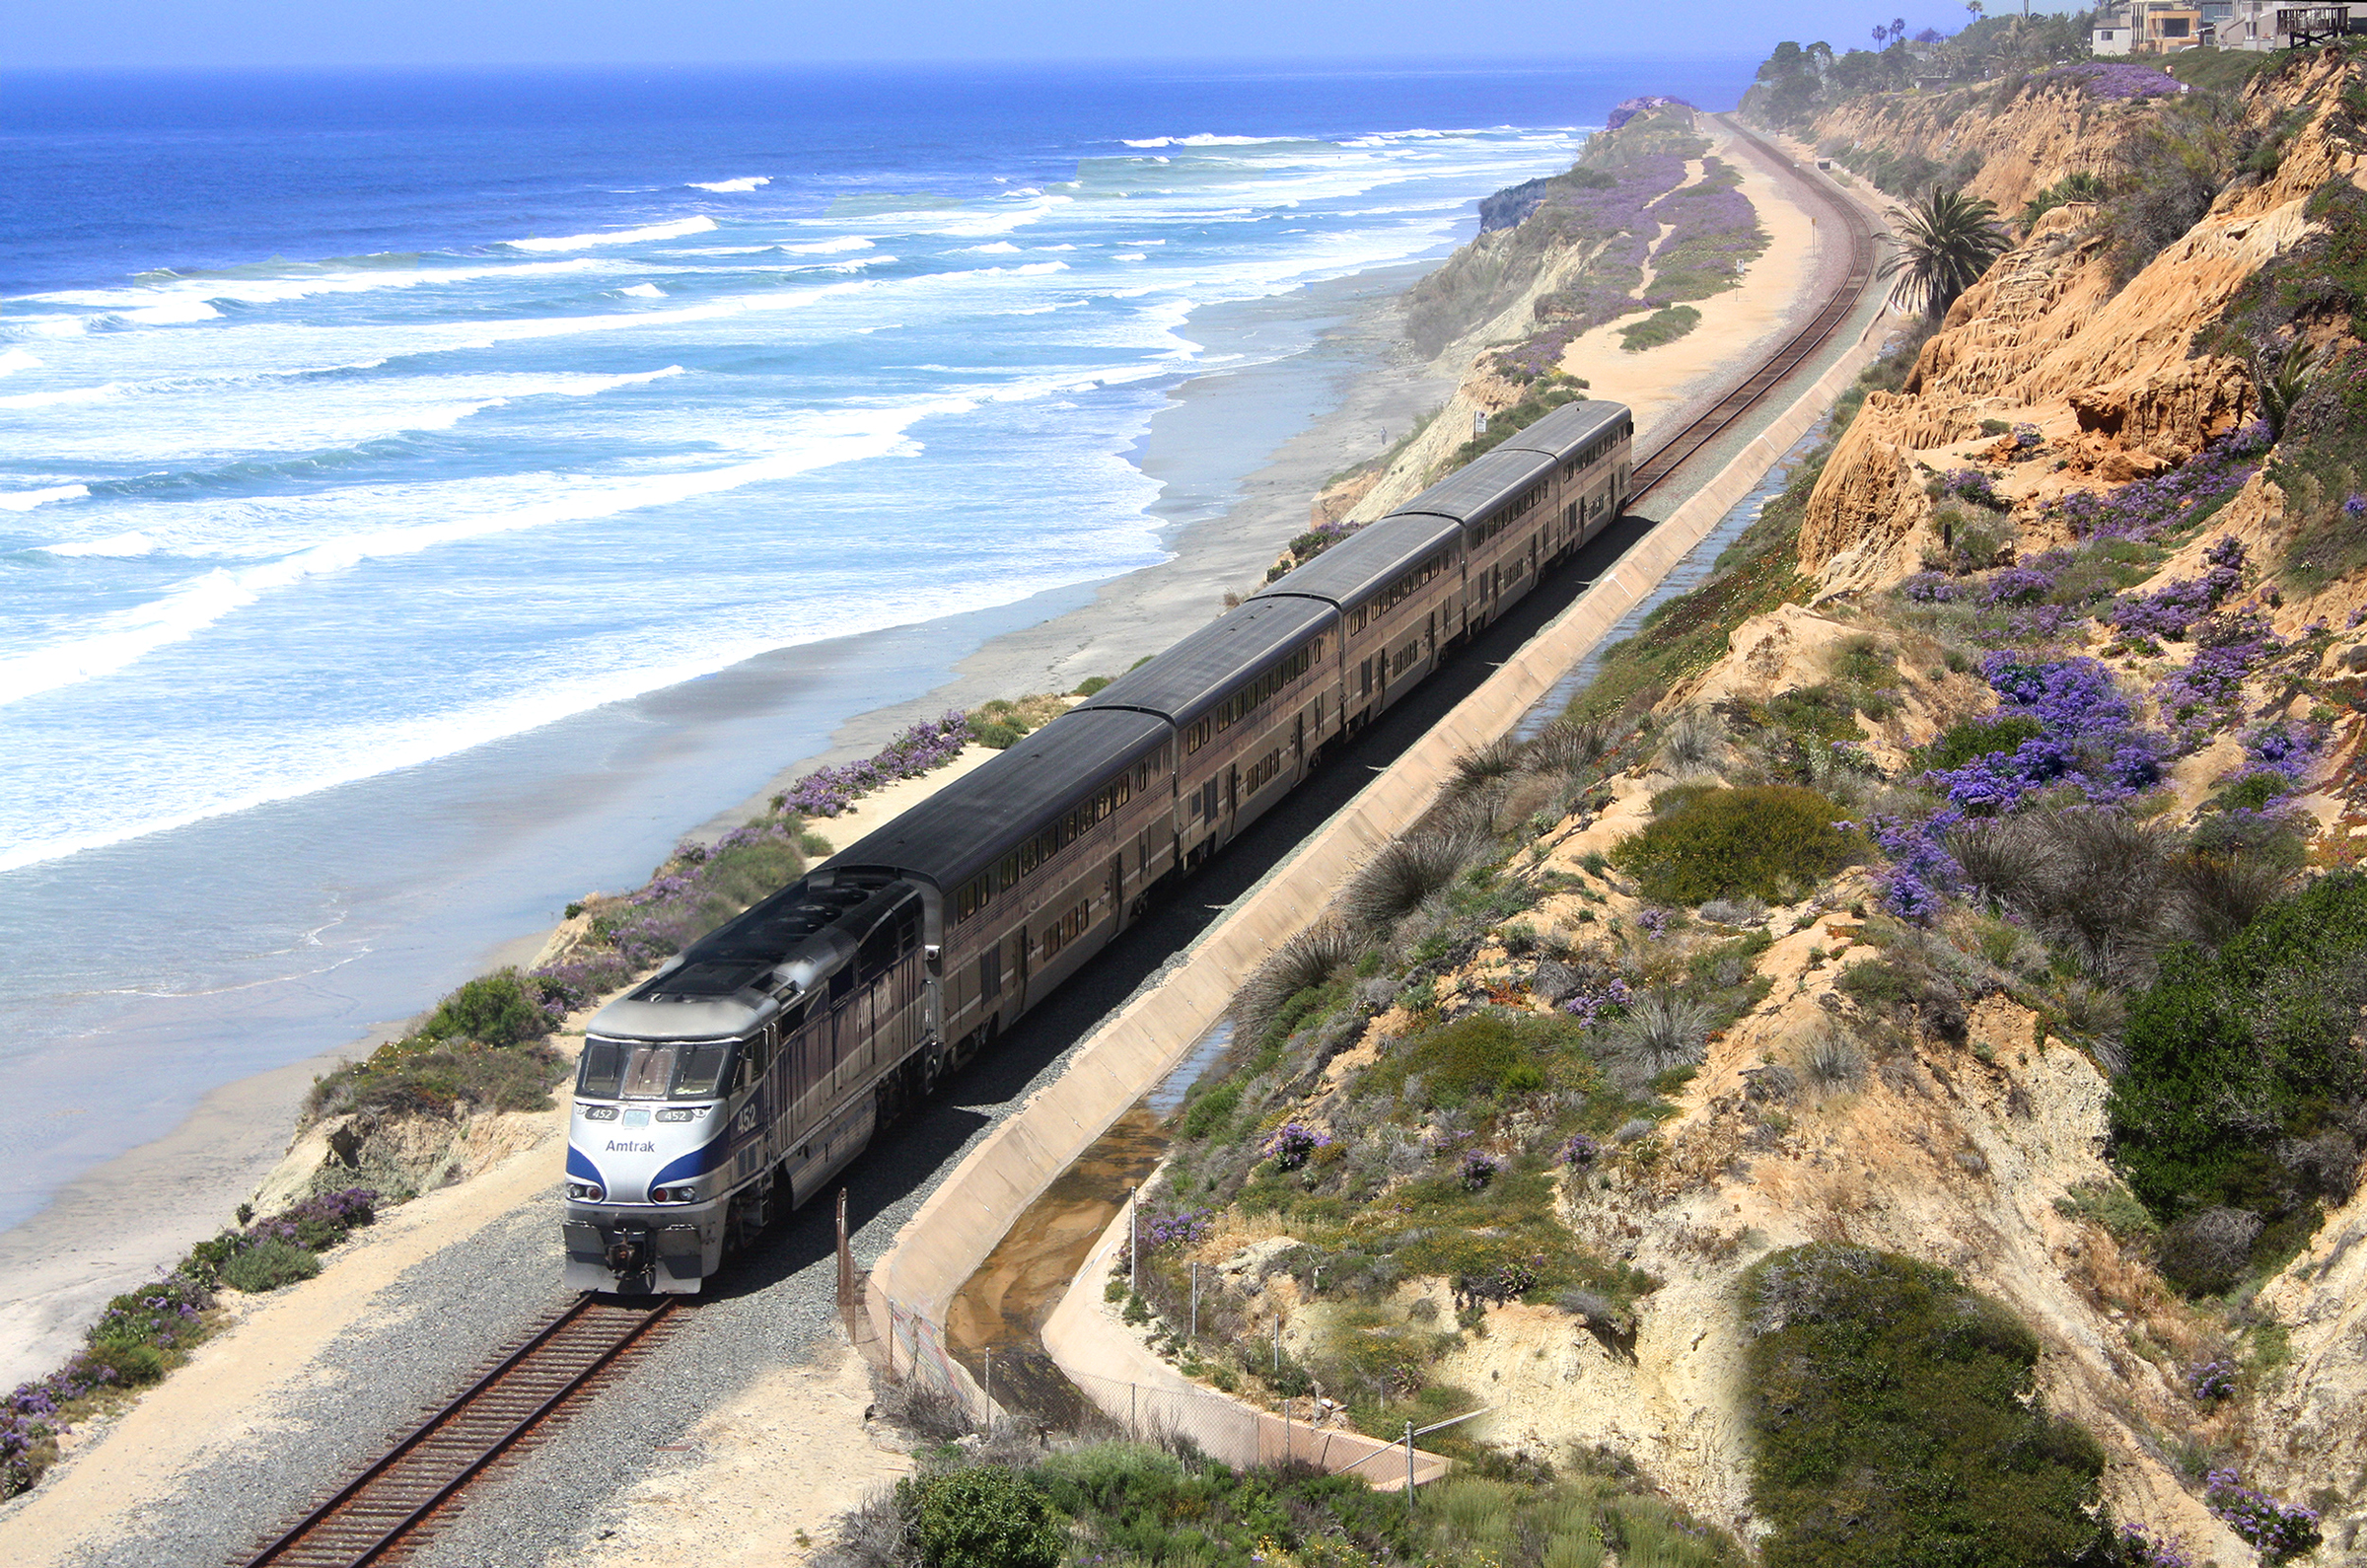 Amtrak Surfliner